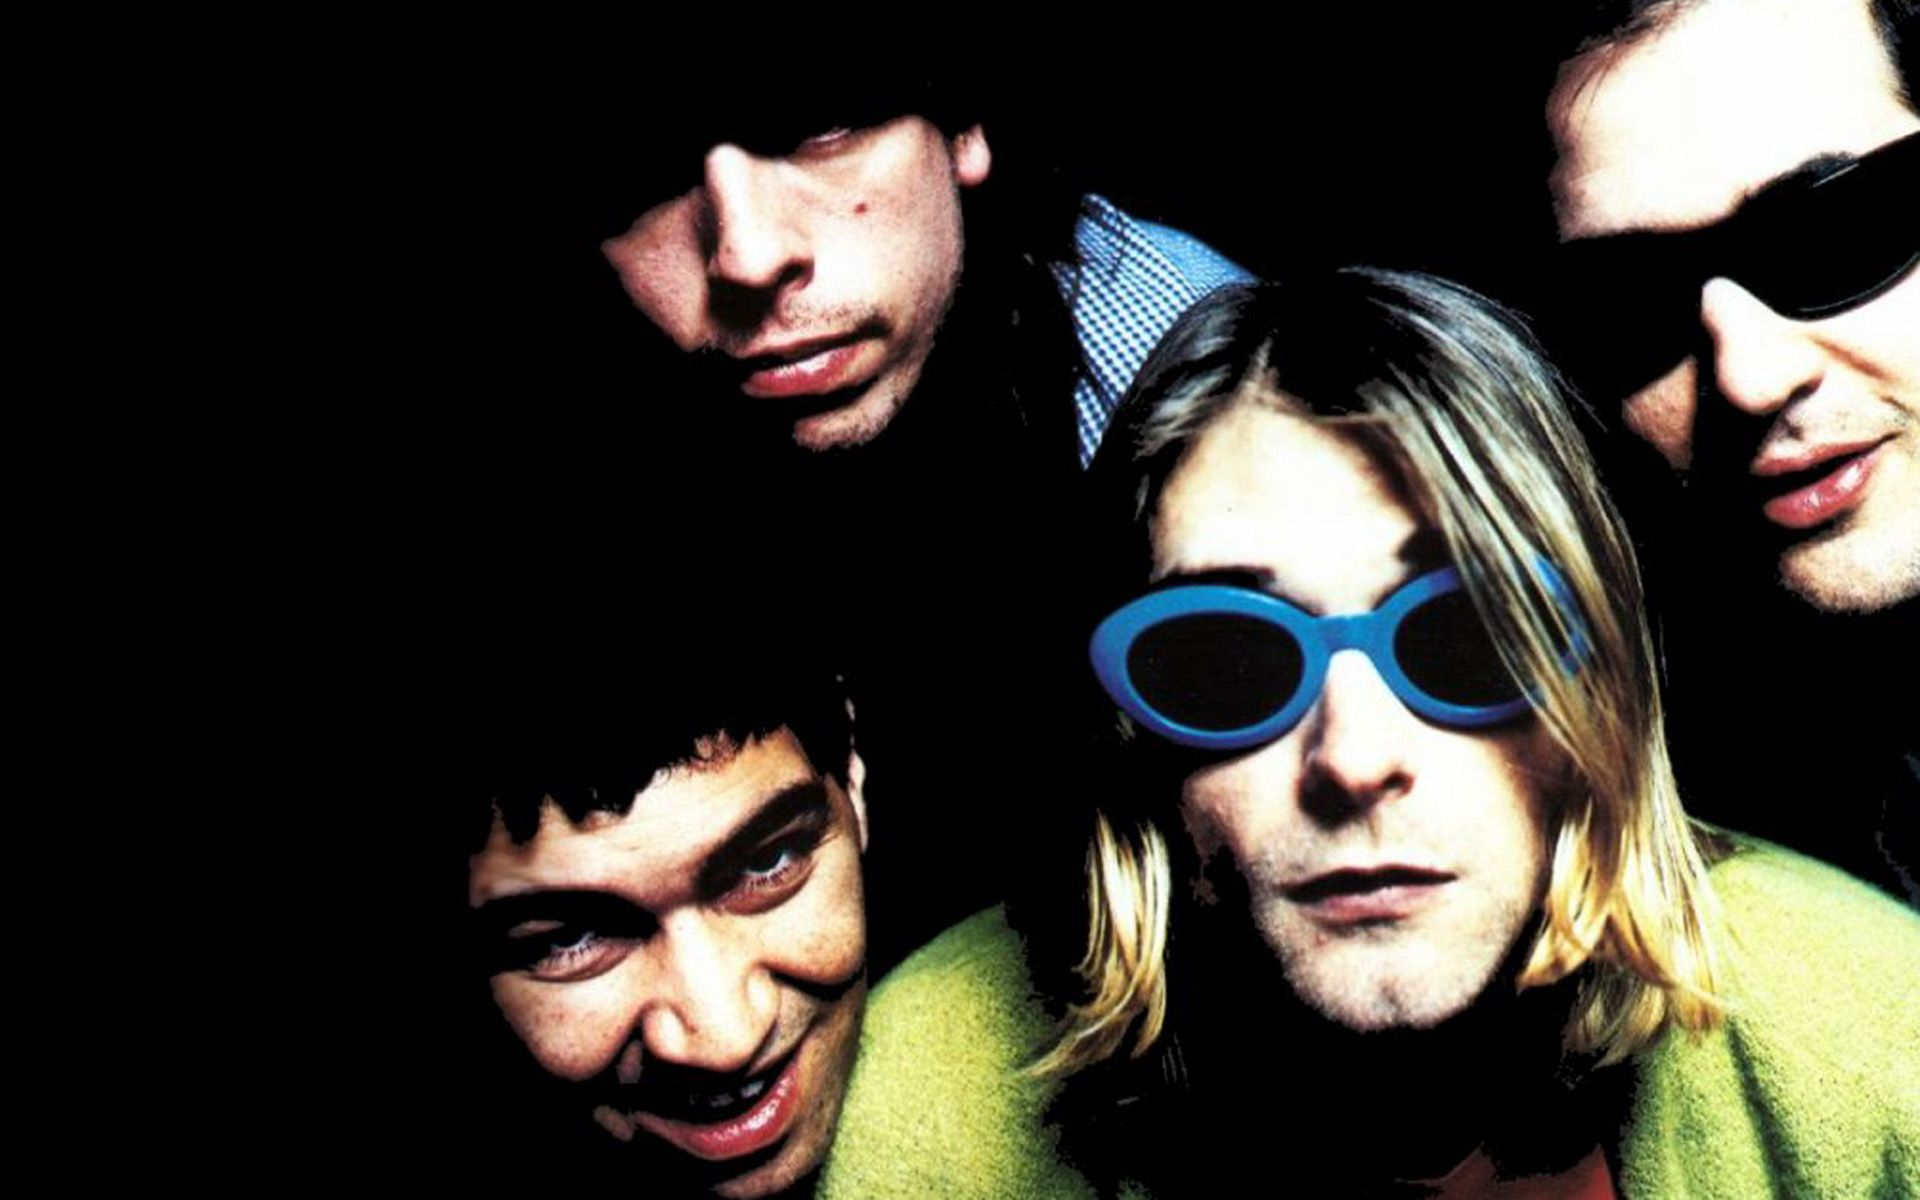 Nirvana Wallpapers Hd For Desktop In 2019 Hd Wallpaper